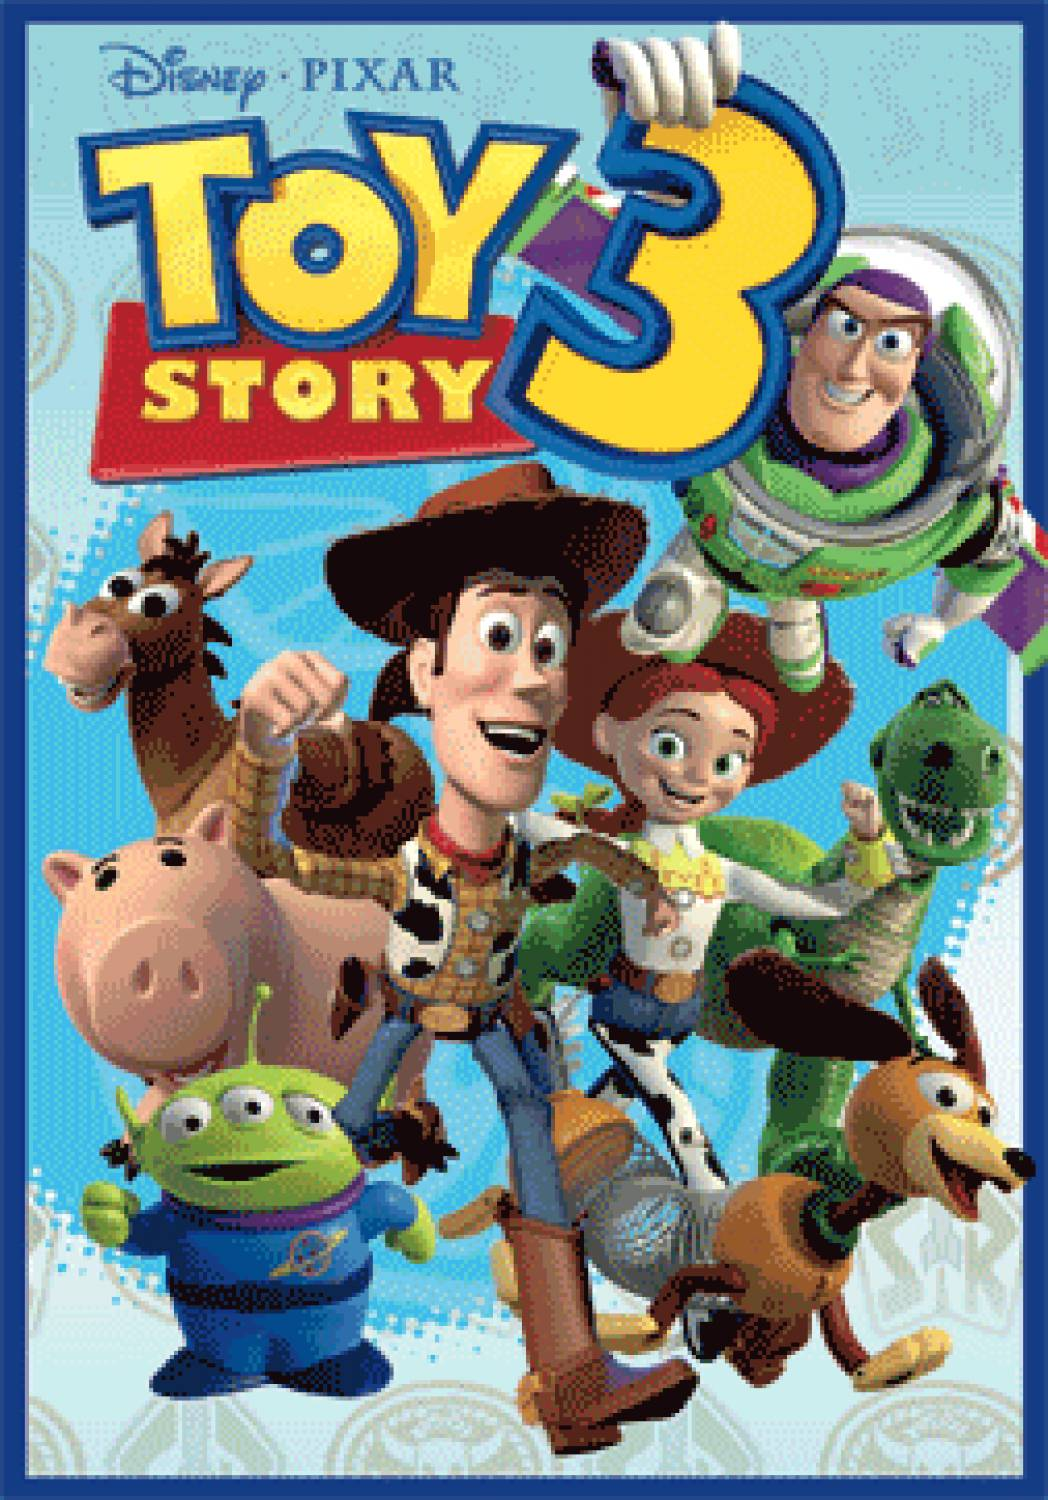 Toy Story 3 - 3D Poster - The Movie Store